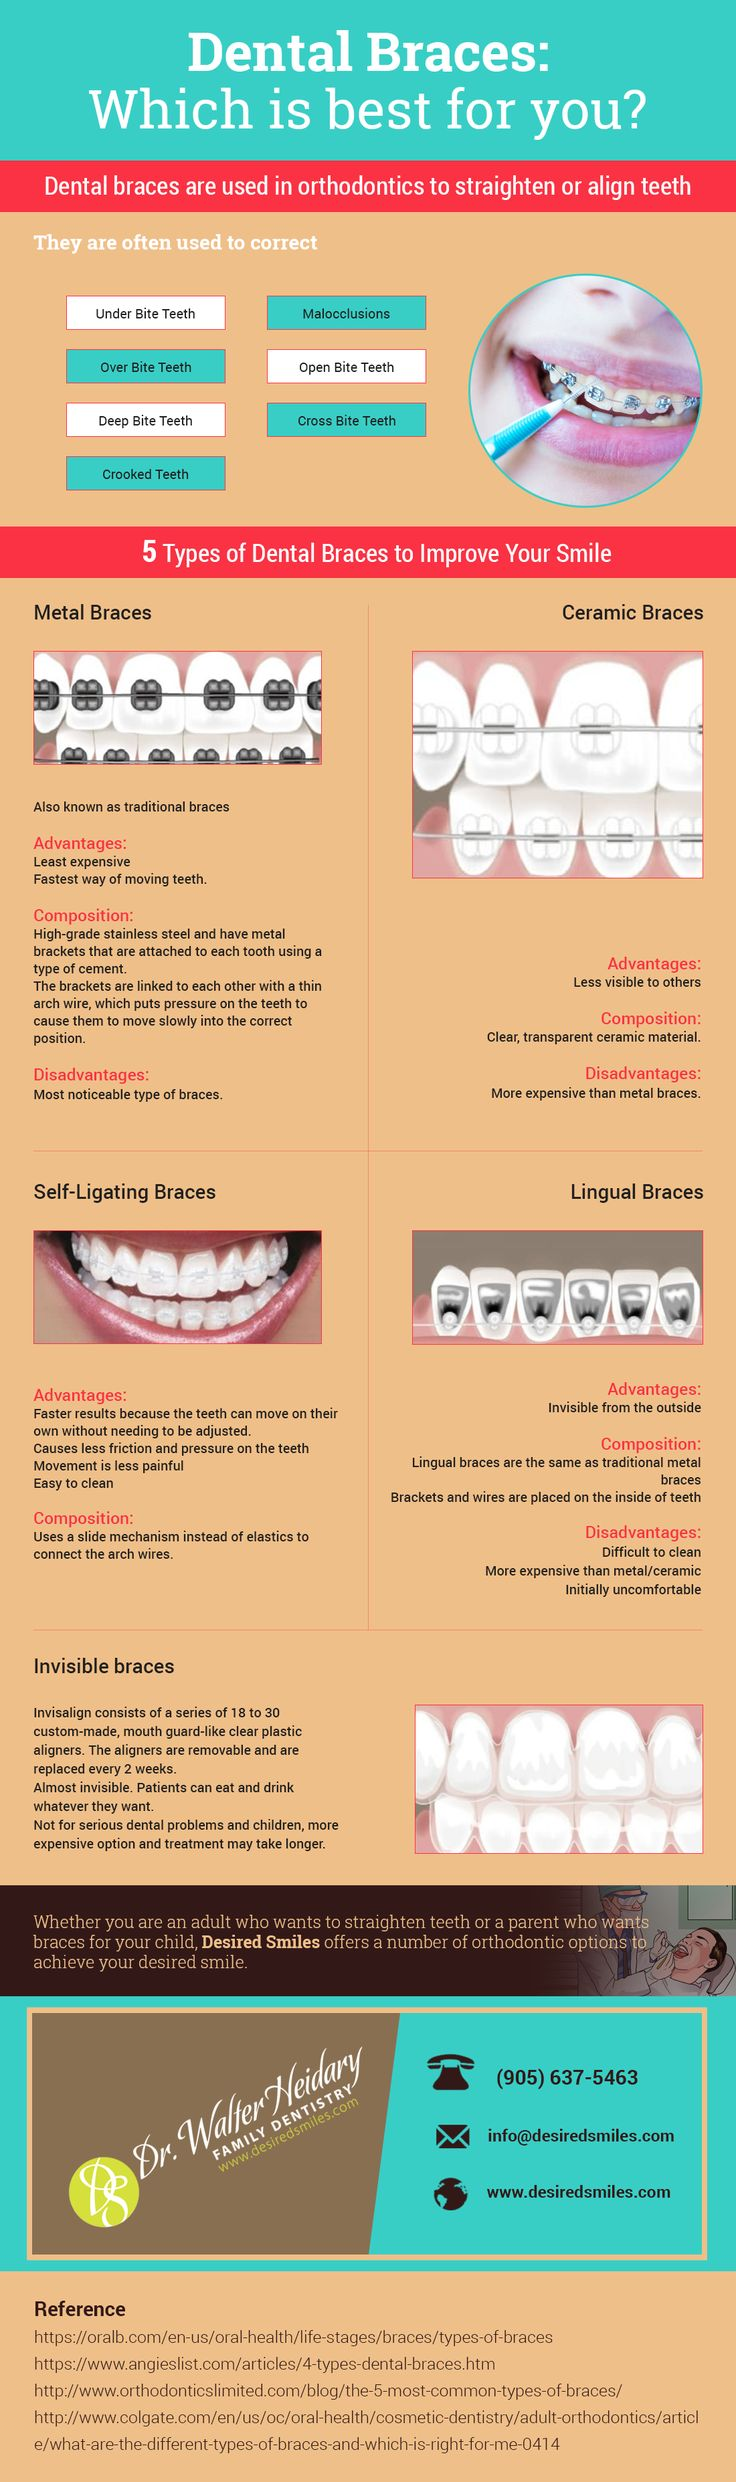 Dental Braces - Which One is Best for You.  Dental Braces are used in orthodontics to align teeth and correct over or under bite issues. Read this infographic to understand the various types of braces available and contact Desired Smiles for a free smile analysis, call 905-637-5463 today.